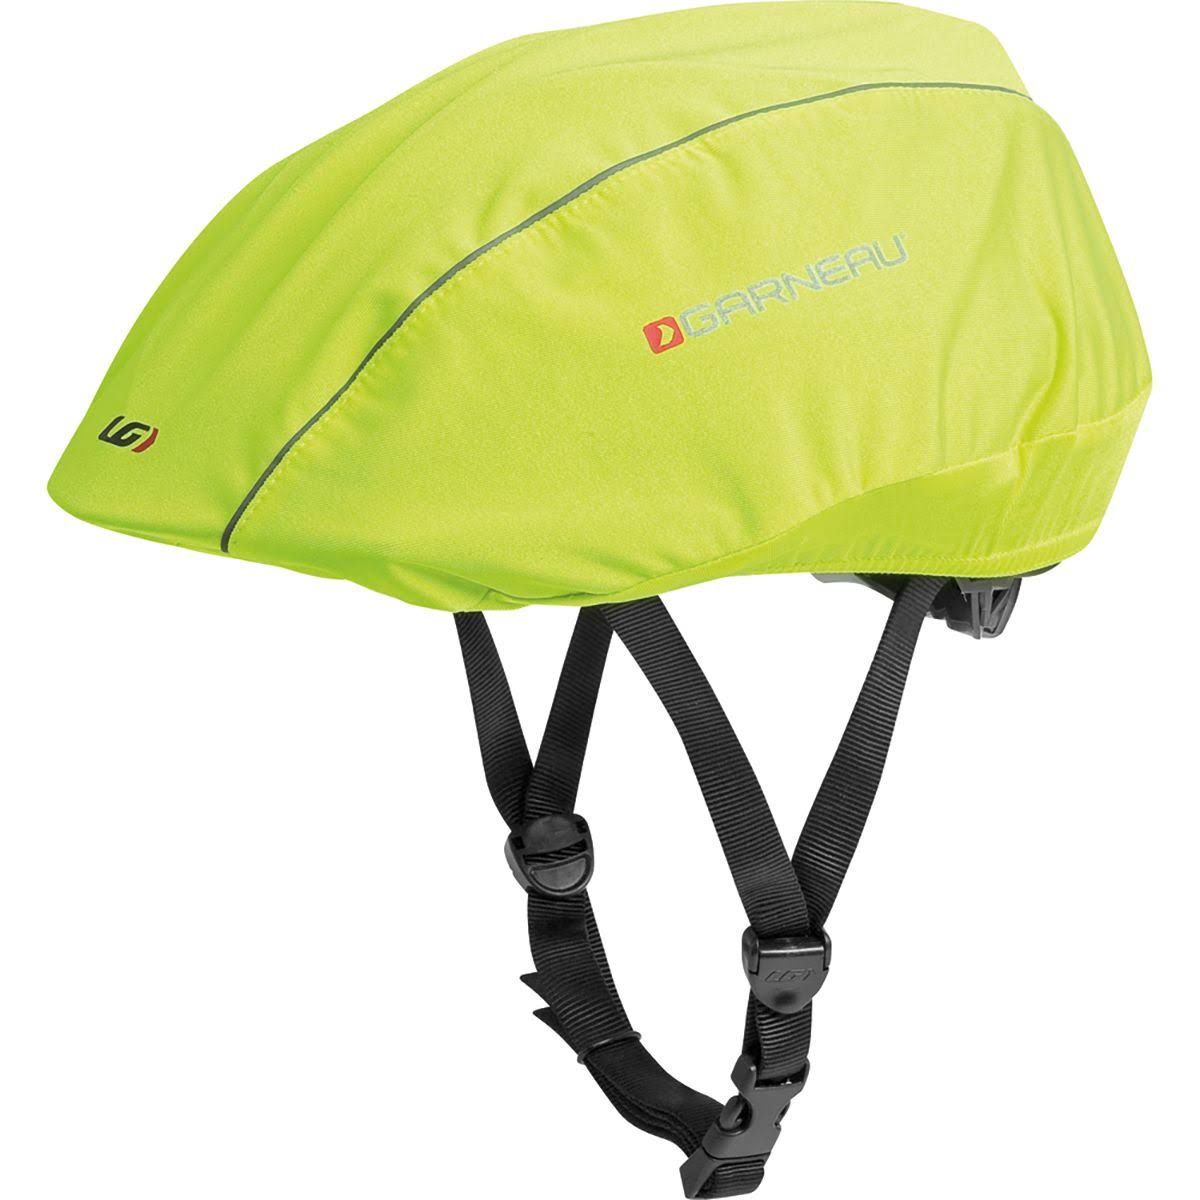 Louis Garneau H2 Helmet Cover: Bright Yellow LG/XL